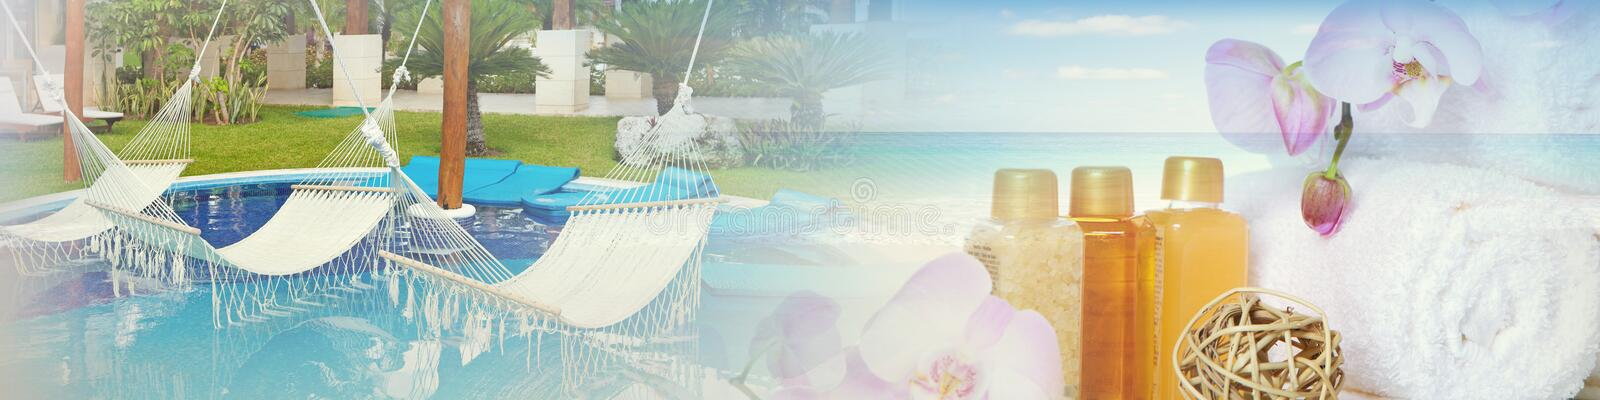 Spa background resort stock photography